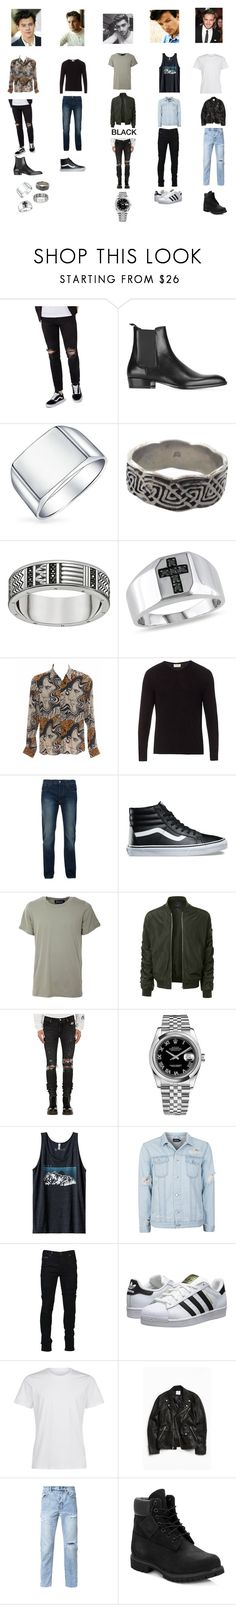 """One direction❤️"" by ebalihodzic ❤ liked on Polyvore featuring Topman, Yves Saint Laurent, Thomas Sabo, Ice, Dries Van Noten, American Vintage, Bellfield, Vans, Numero00 and LE3NO"